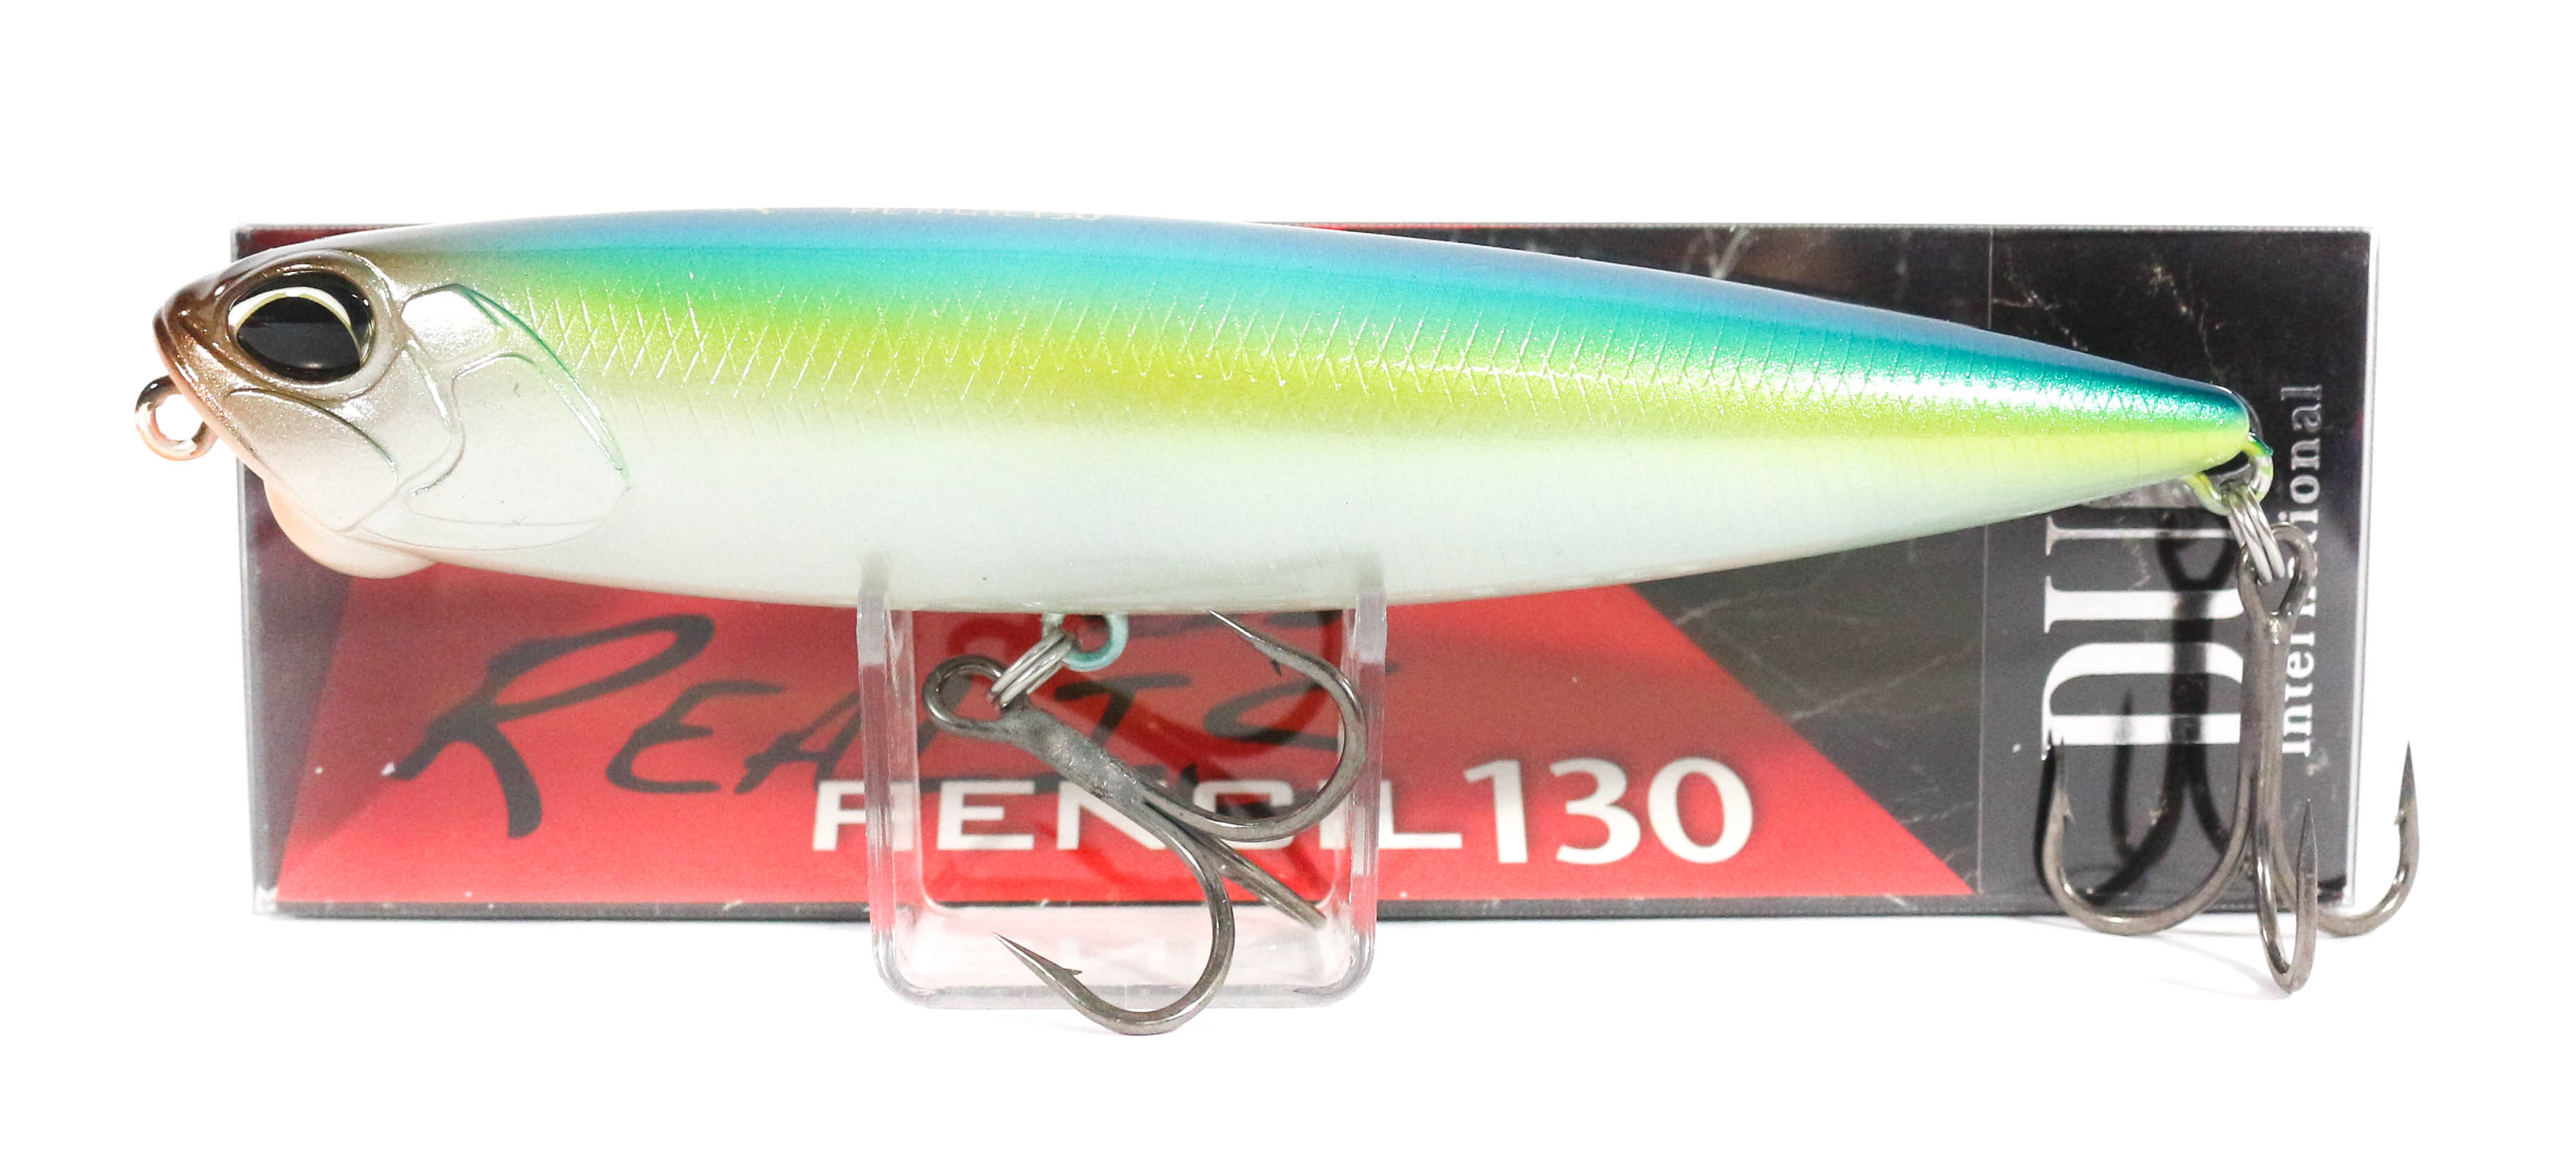 Duo Realis Pencil 130 Topwater Floating Lure ACC3154 (3716)